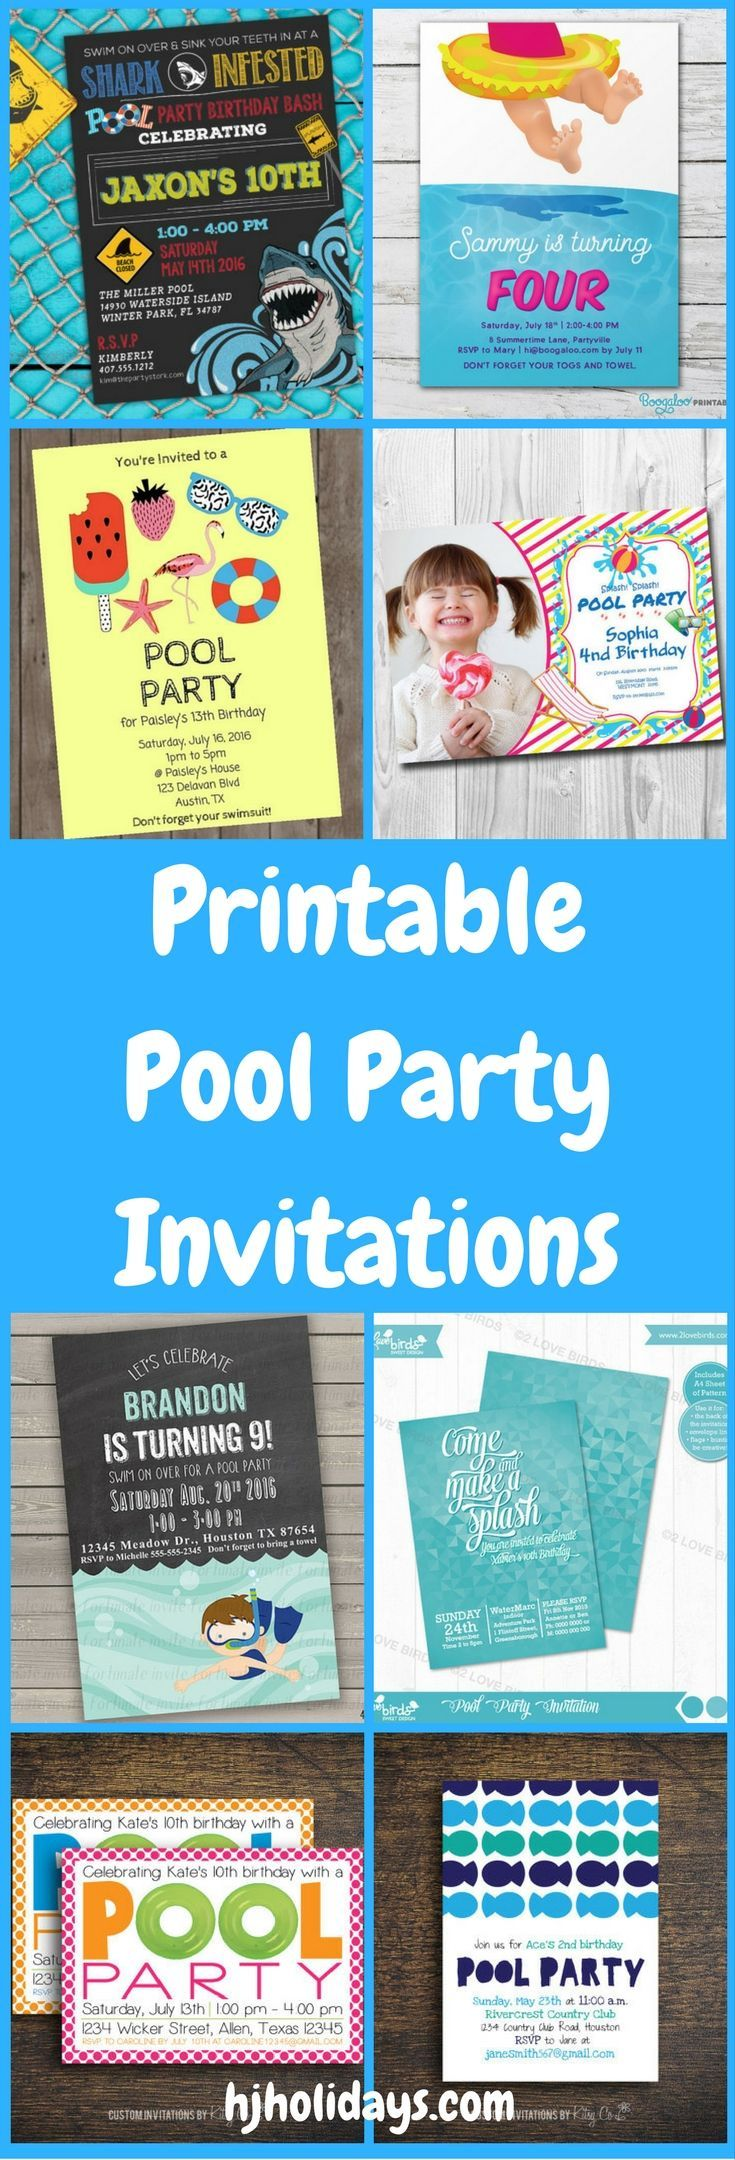 Printable Pool Party Invitations For Kids  Invitations. Letter Of Support Template. Free Billing Invoice Template. Emergency Evacuation Map Template. Resume Template Download Word. Publisher Flyer Templates. Short Cover Letter Template. Home Purchase Agreement Template. Ucr Graduate School Of Education